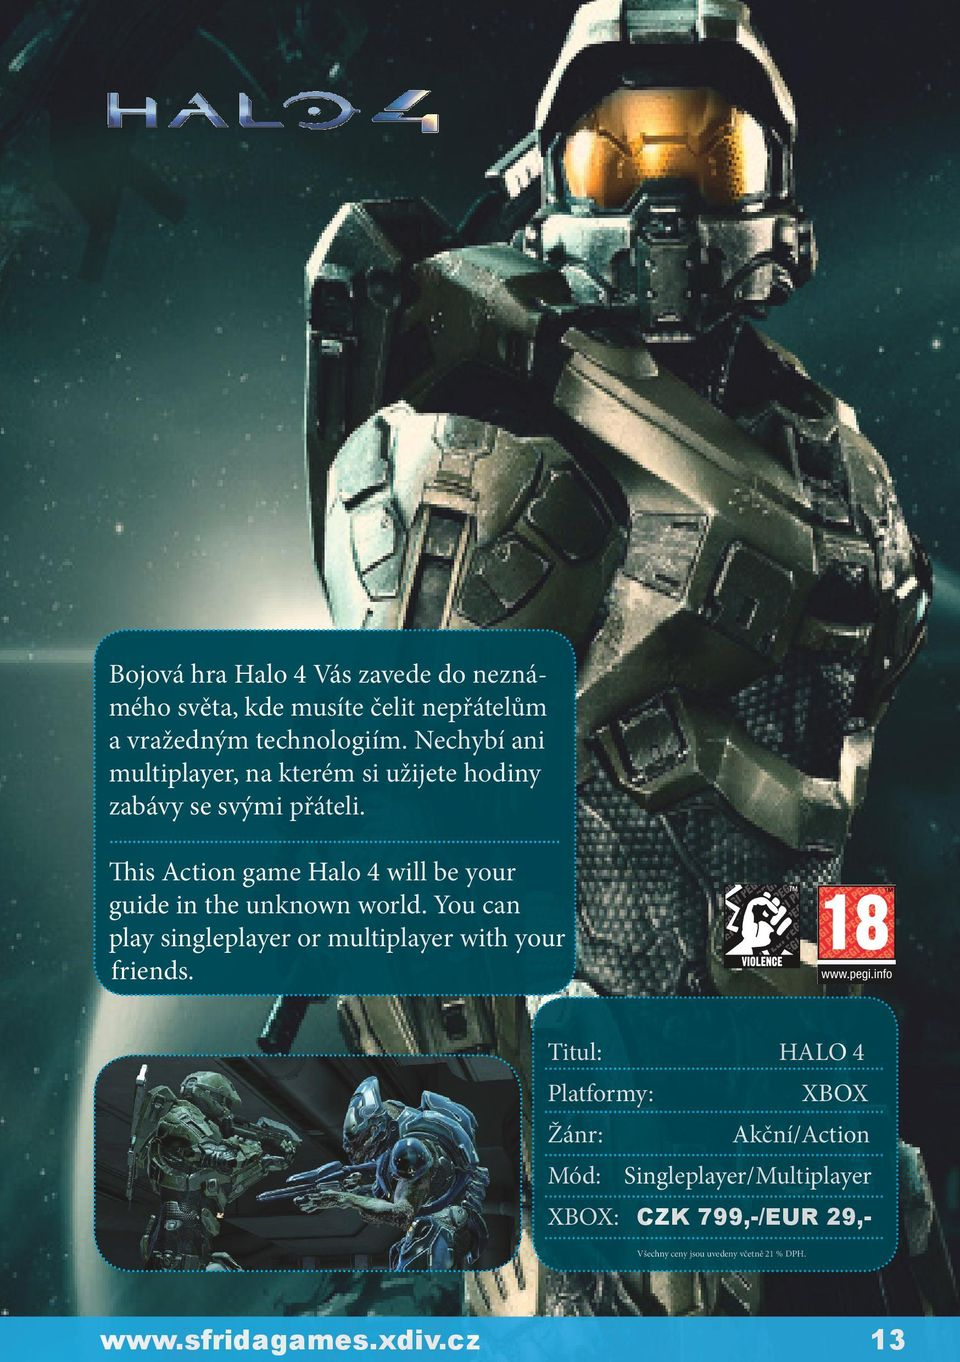 This Action game Halo 4 will be your guide in the unknown world.